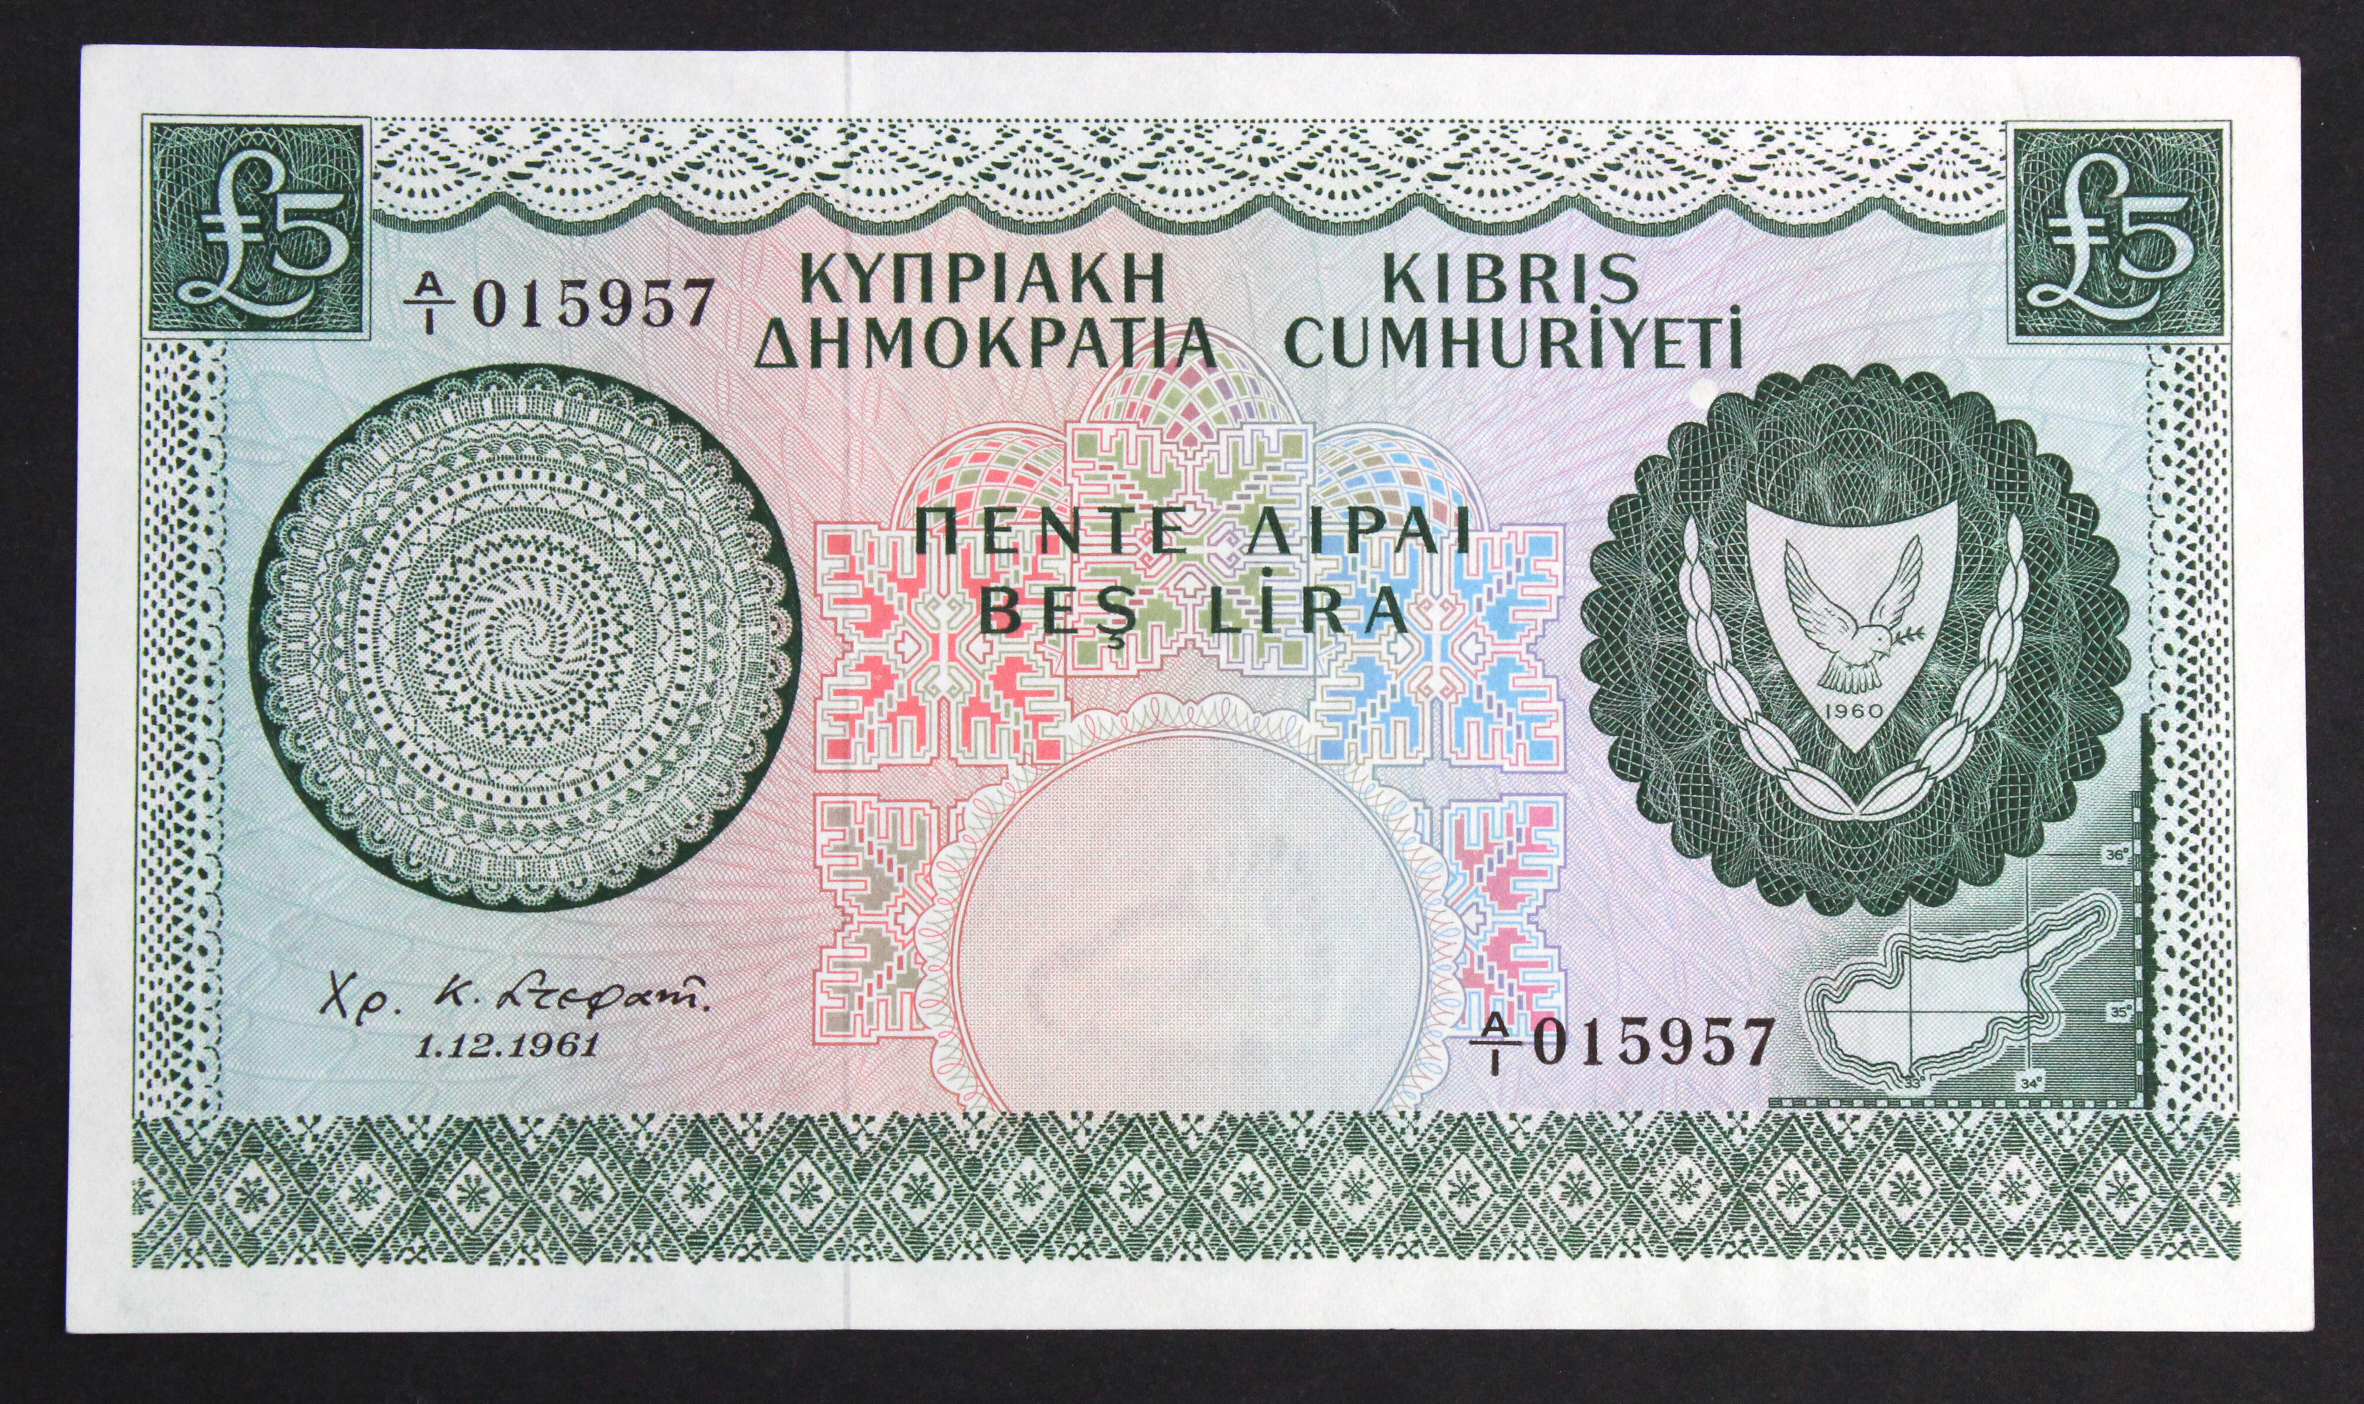 Cyprus 5 Pounds dated 1st December 1961, first date and first prefix of issue, A/1 015957 (TBB